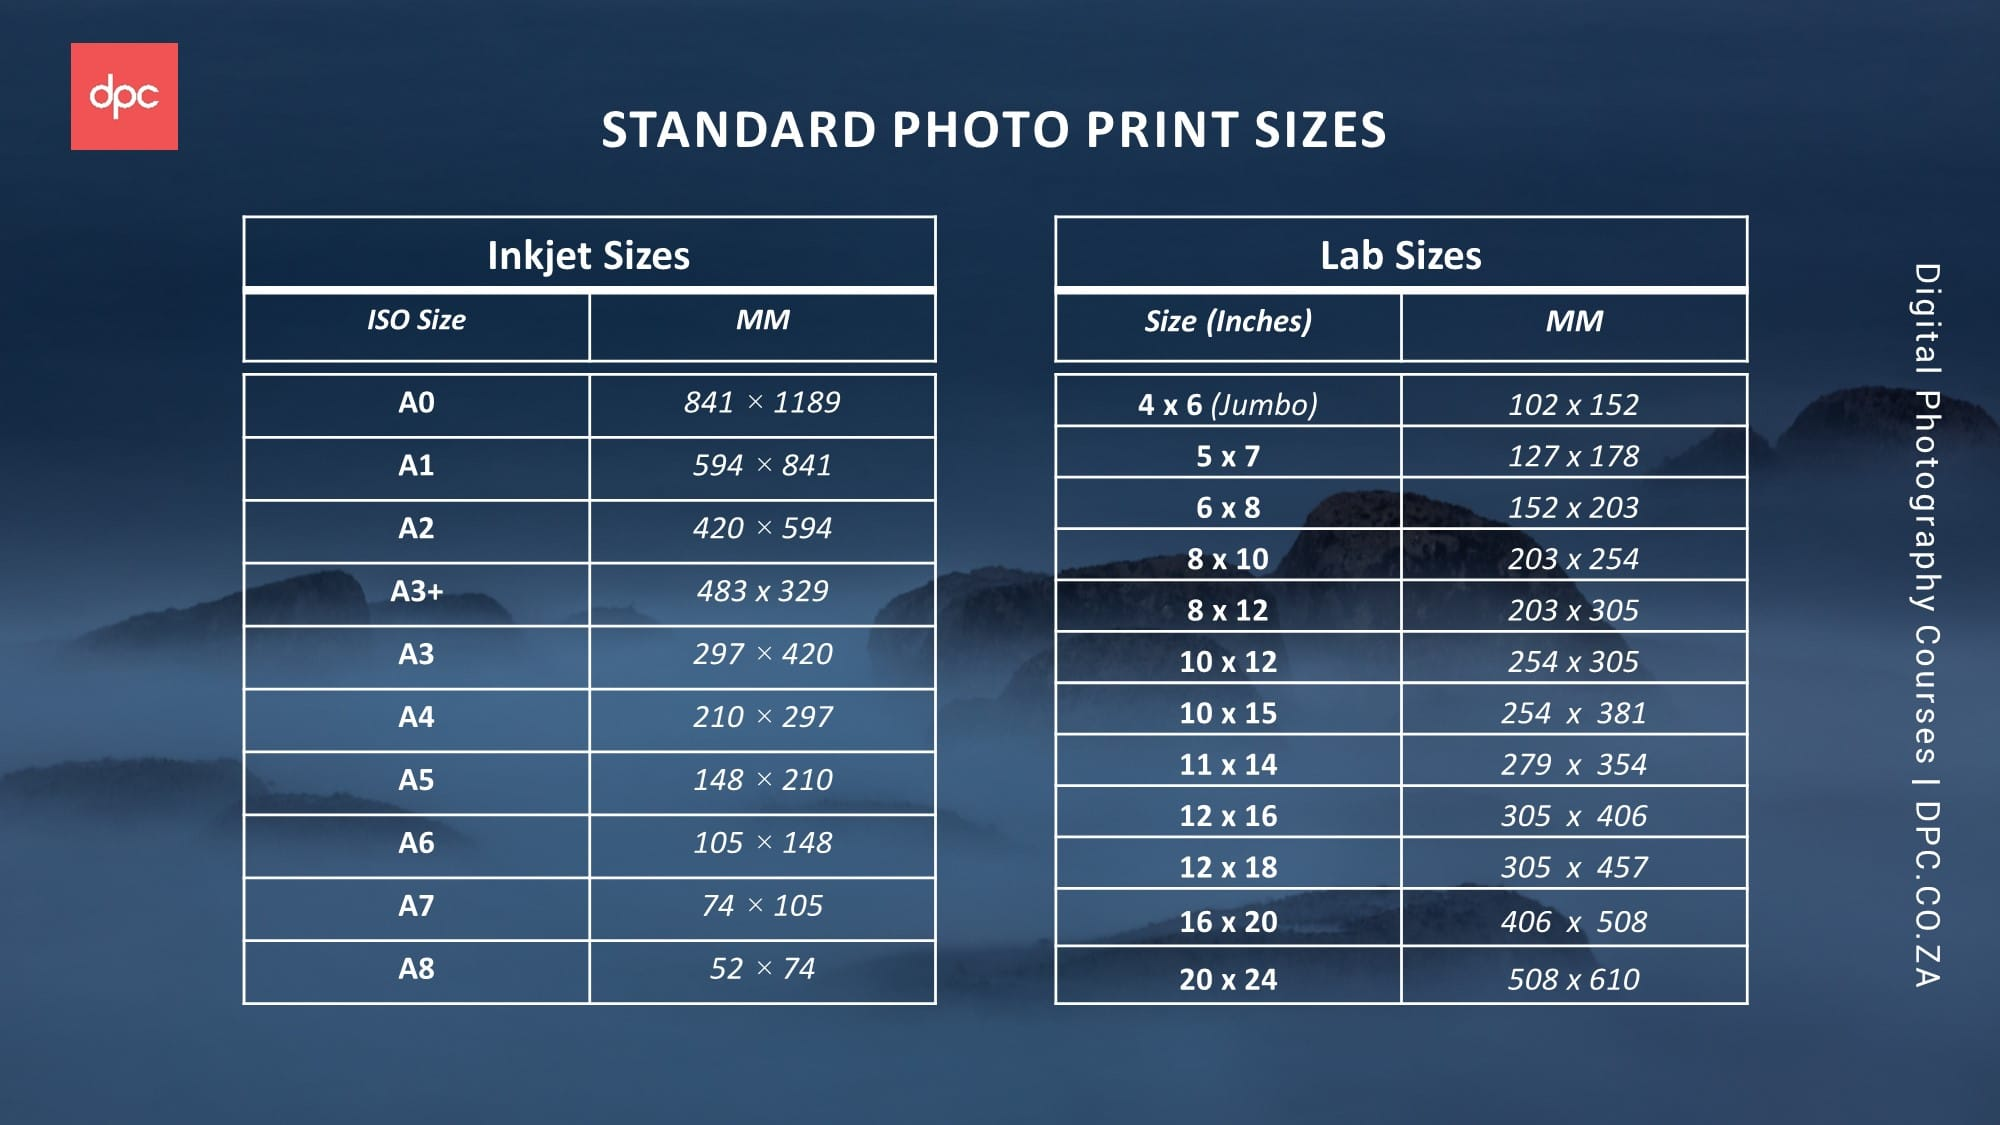 Standard Print Sizes | DPC | Digital Photography Courses